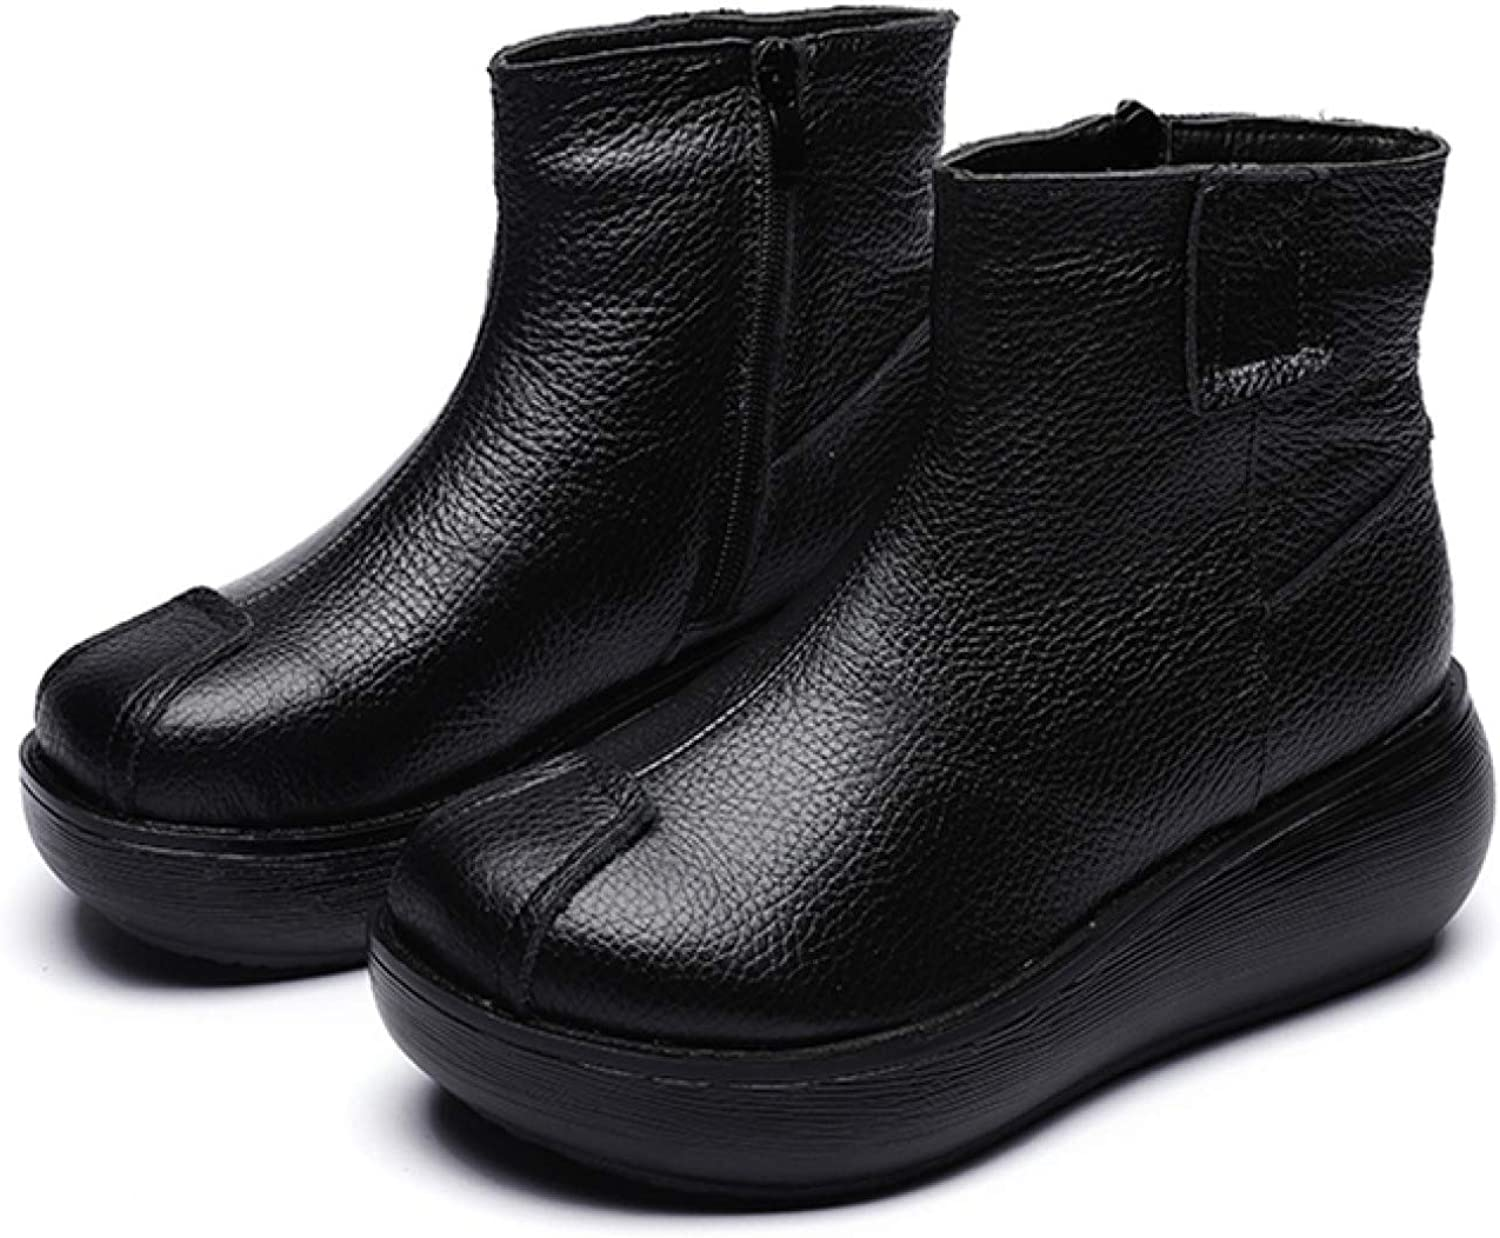 RHOMEIE Women's Ankle Boots Ladies Round Toe 40% OFF Cheap Sale On Slip Casual Side 2021 autumn and winter new